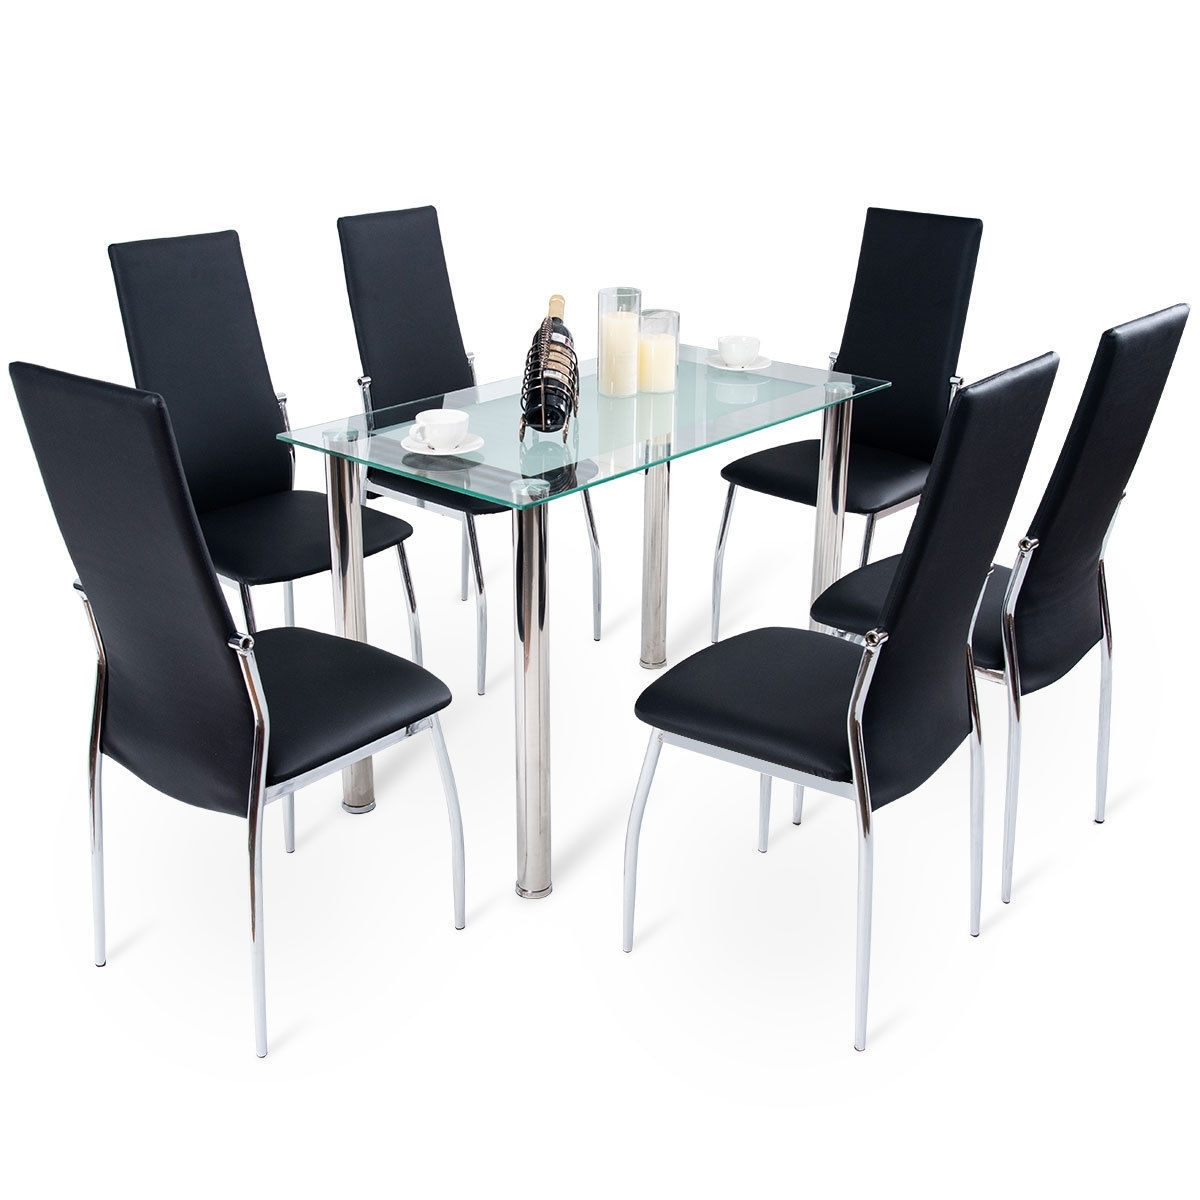 Most Recent Glass Dining Tables With 6 Chairs With Regard To Costway: Costway Modern Glass Dining Table Set Tempered Glass Top (View 23 of 25)